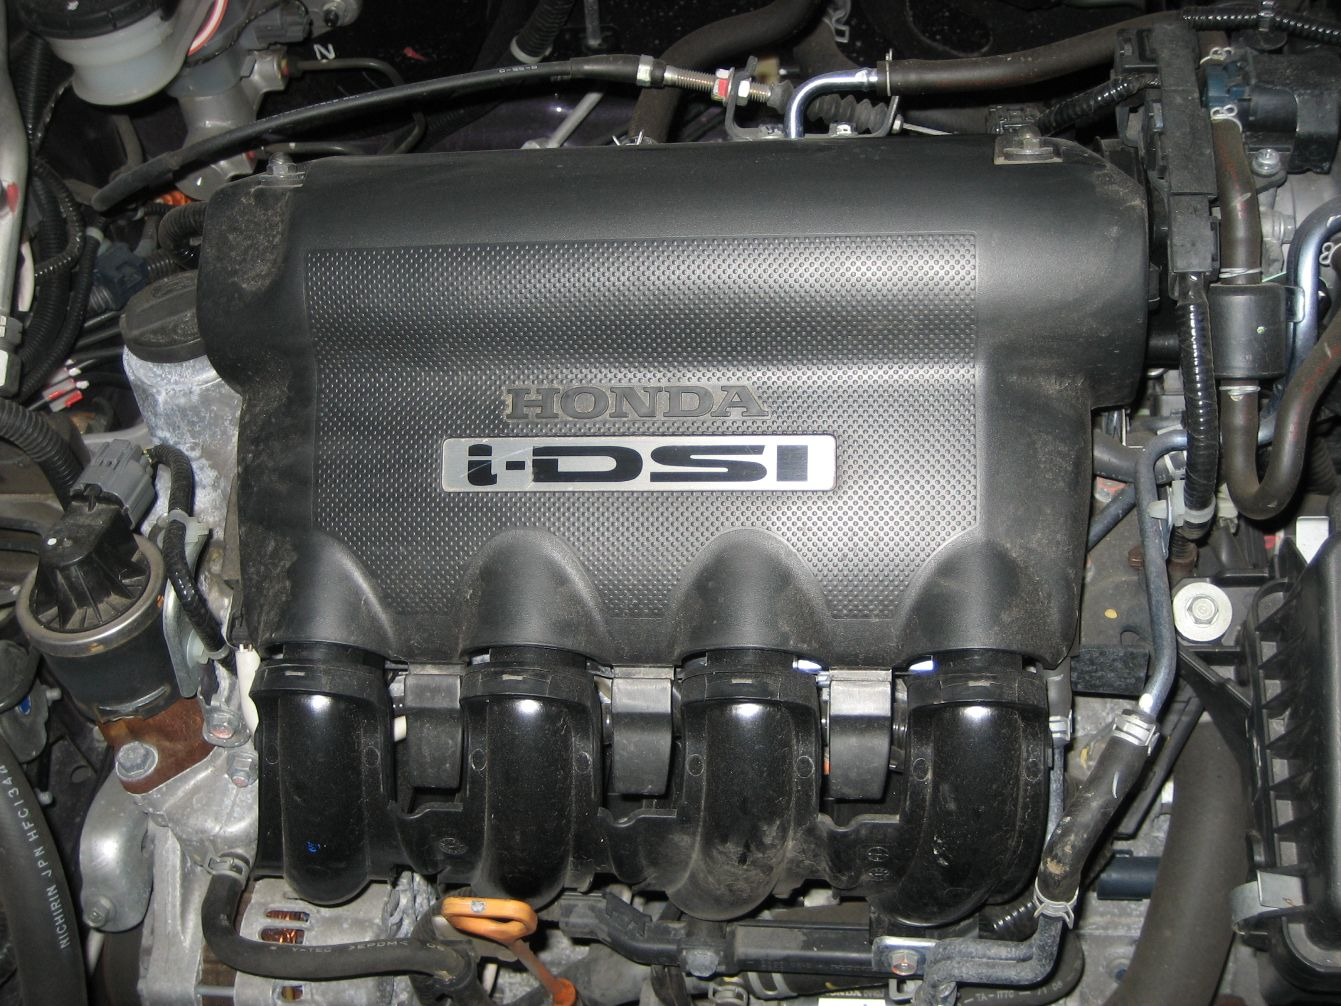 Honda i-dsi engine